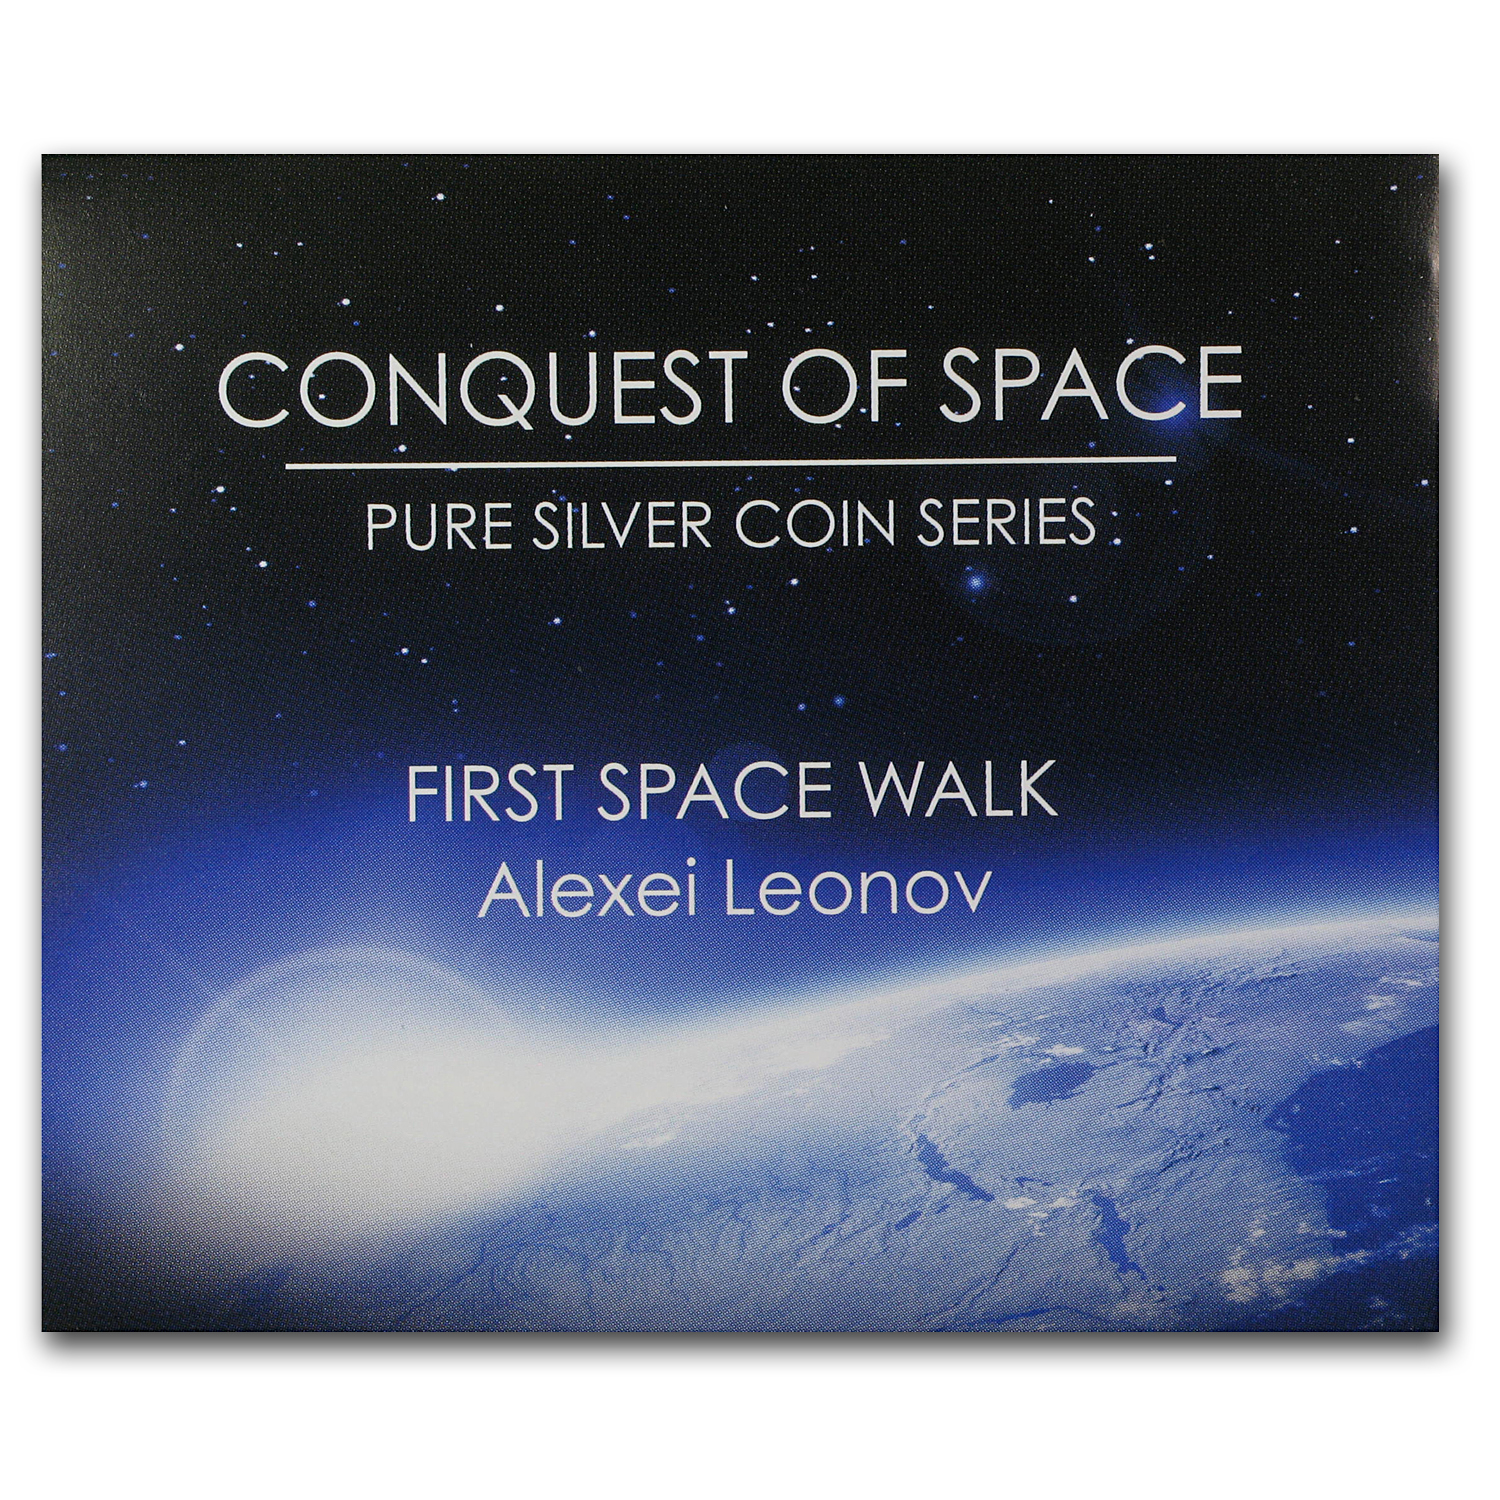 2011 1 oz Silver Niue $2 Coin - First Space Walk